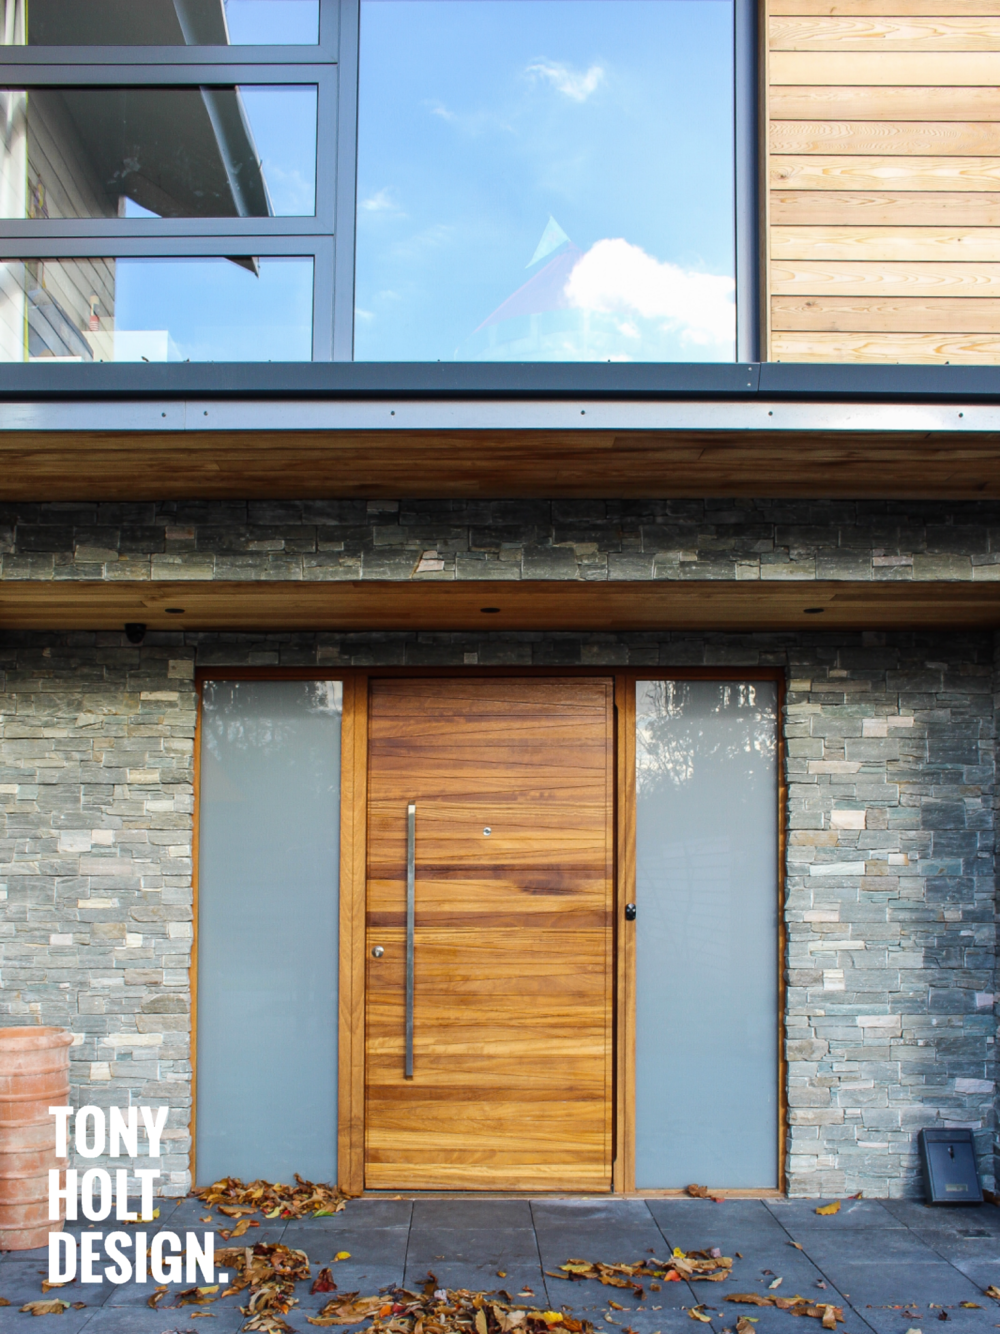 Tony Holt Design_Self Build_Exterior 03.png